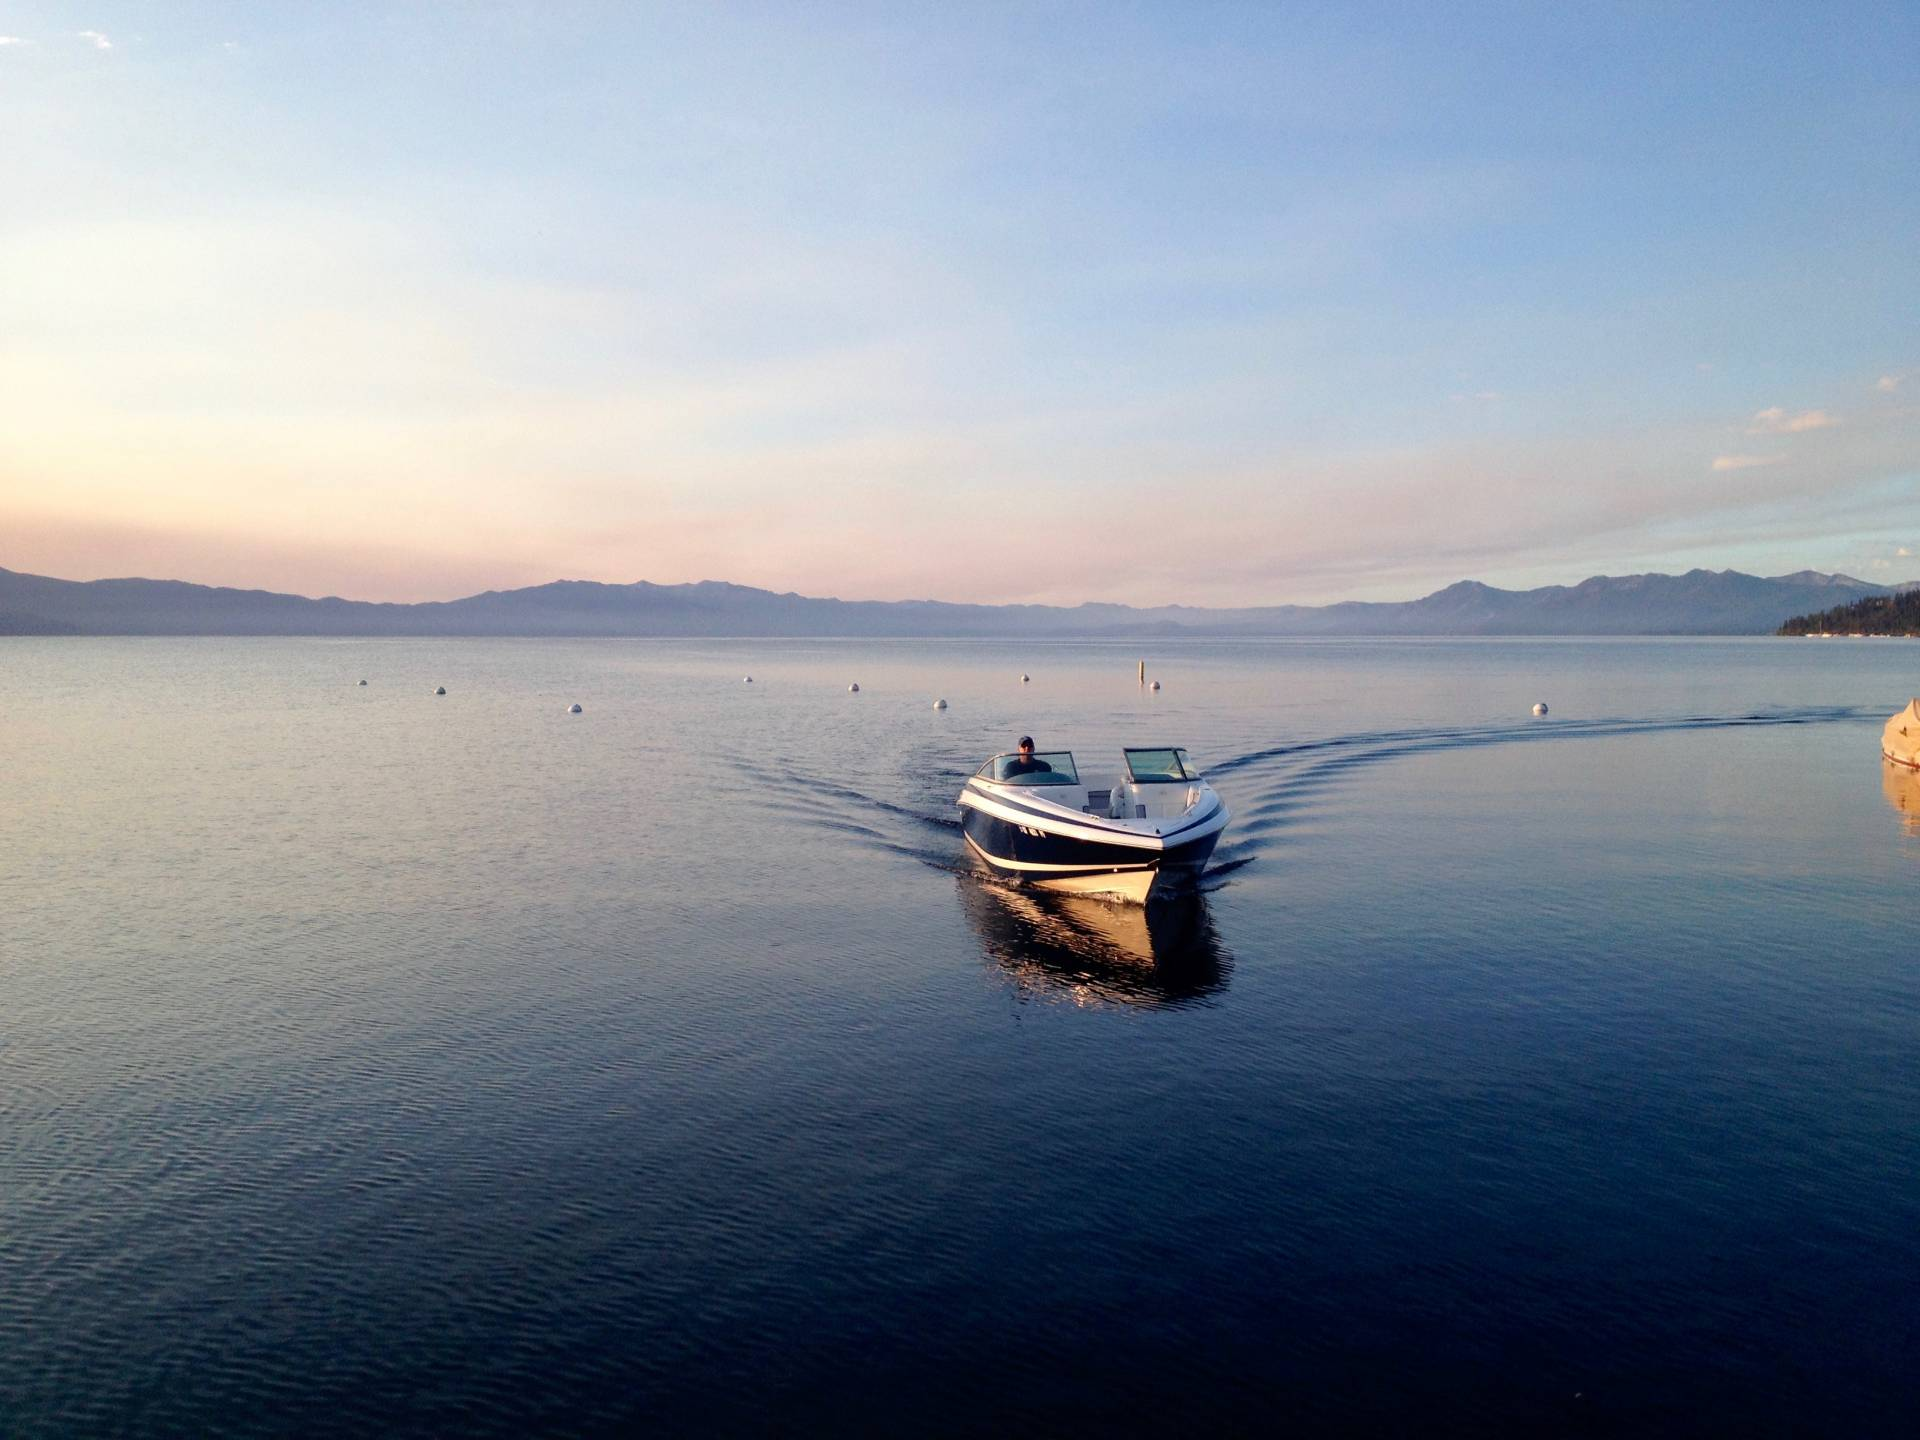 Sunrise on Lake Tahoe CA and getting ready to go out wakeboarding